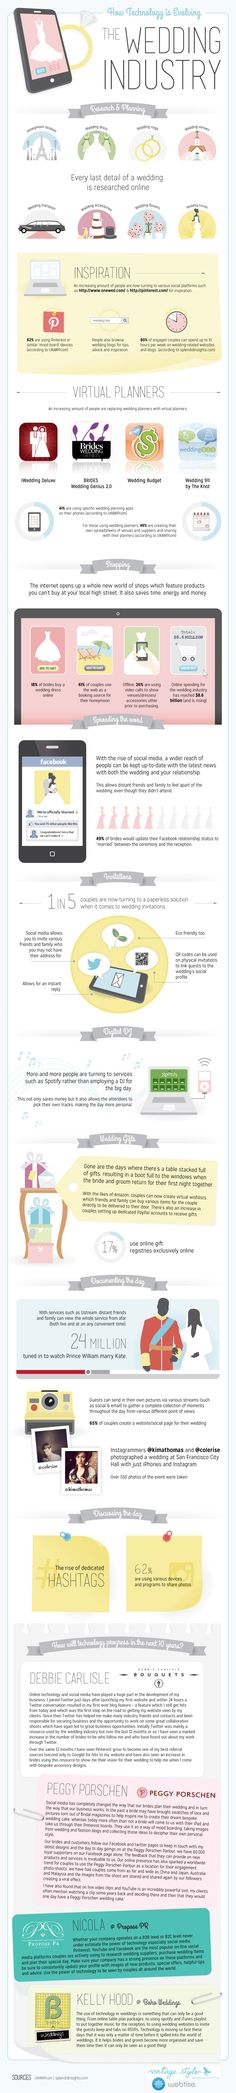 how-techonology-is-evolving-the-wedding-industry